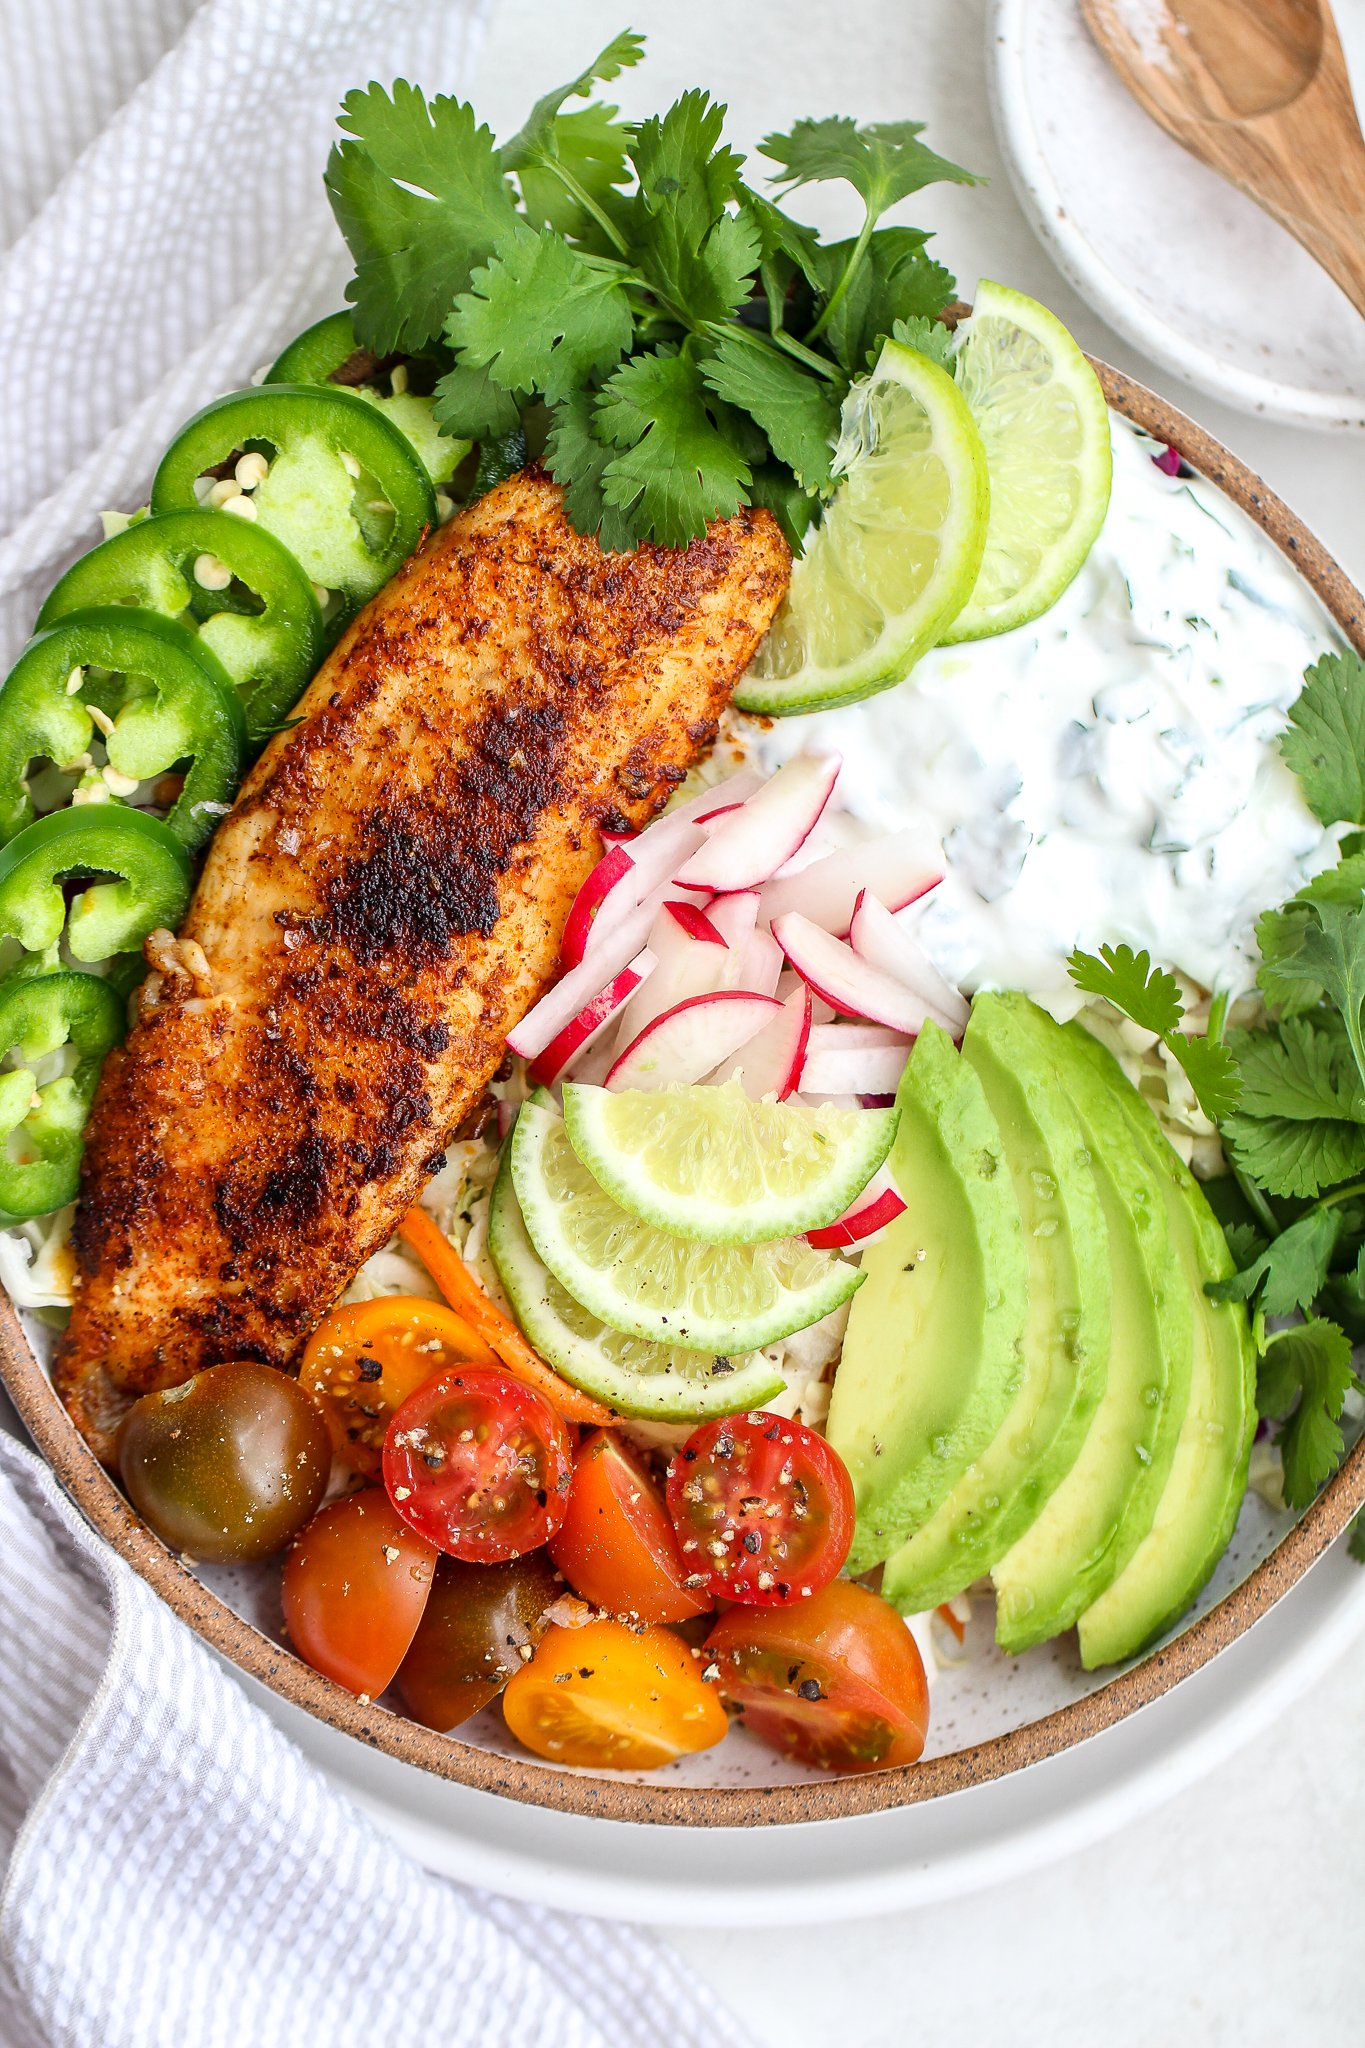 Fish taco bowls with blacked fish, cilantro lime cream sauce, fresh jalapeños, cilantro leaves, sliced lime, grape tomatoes and radishes